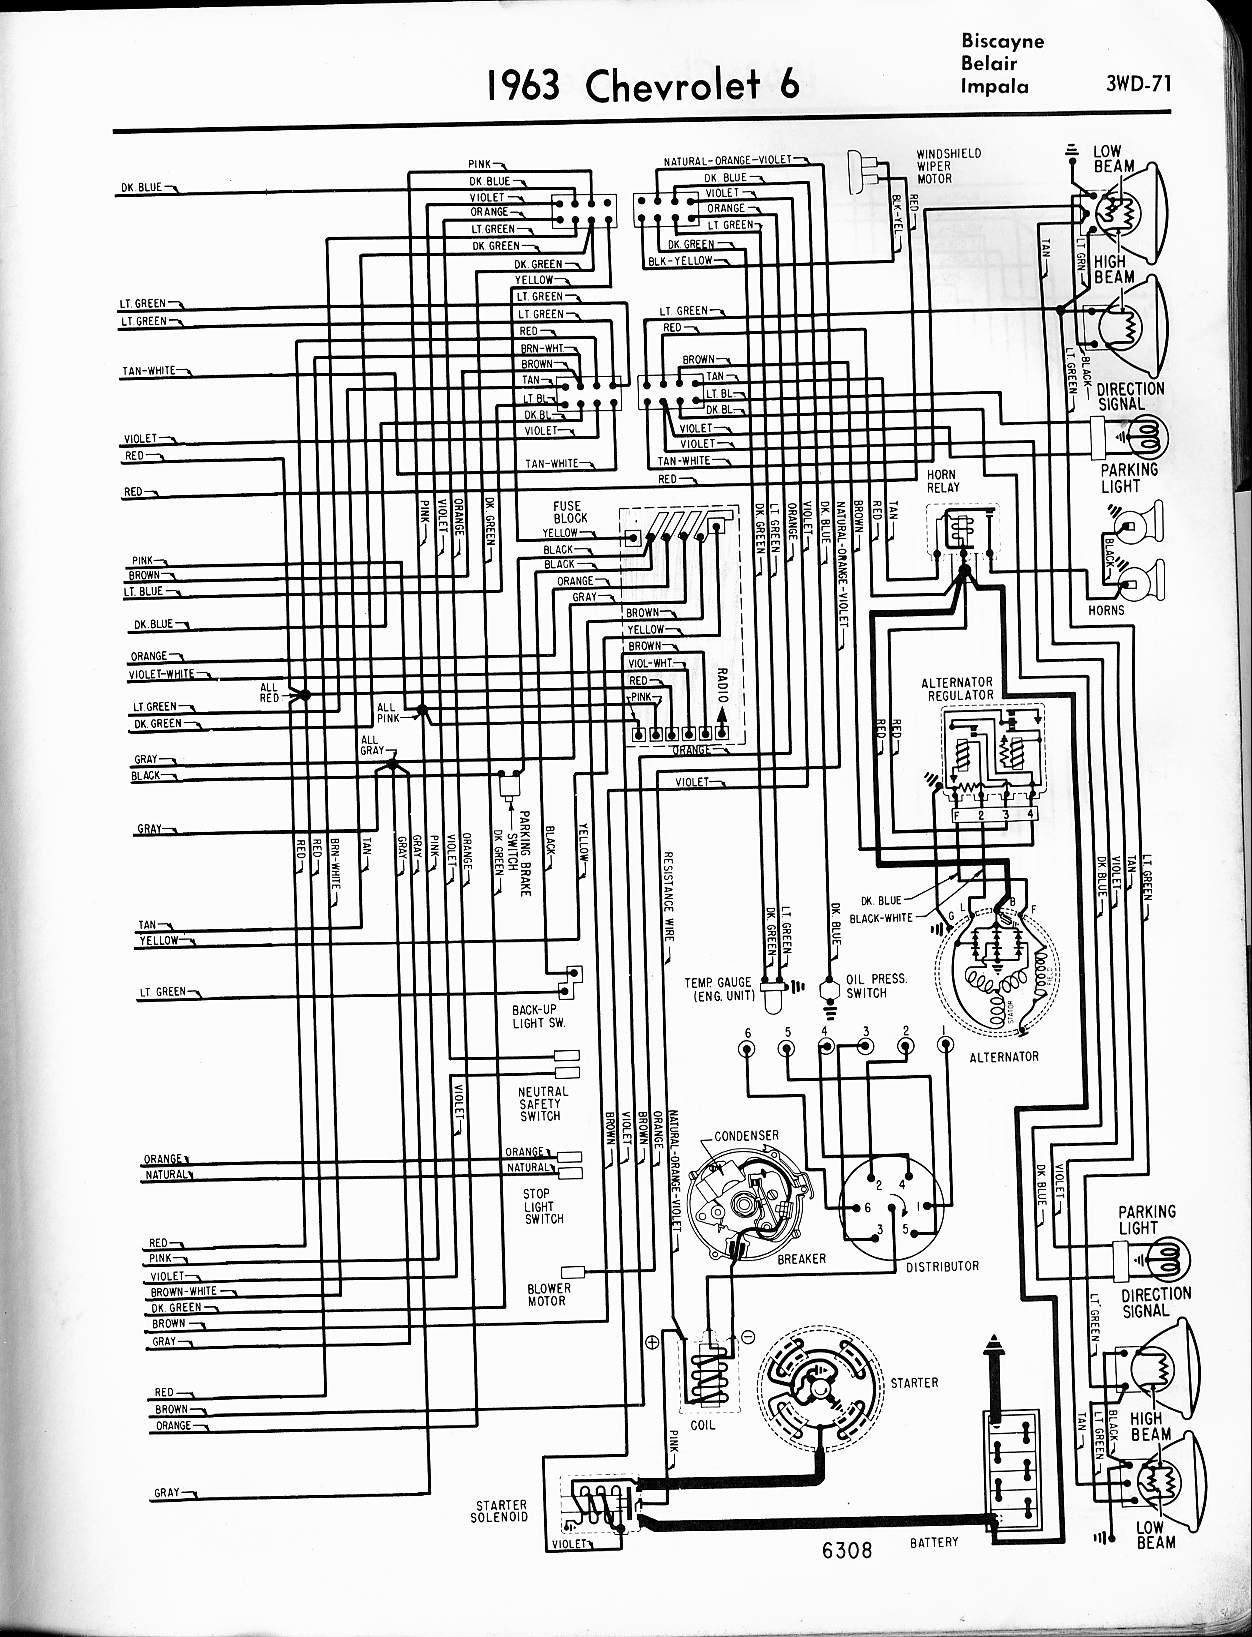 1965 impala wiring diagram easy wiring diagrams u2022 rh art isere com 65 chevy impala wiring diagram